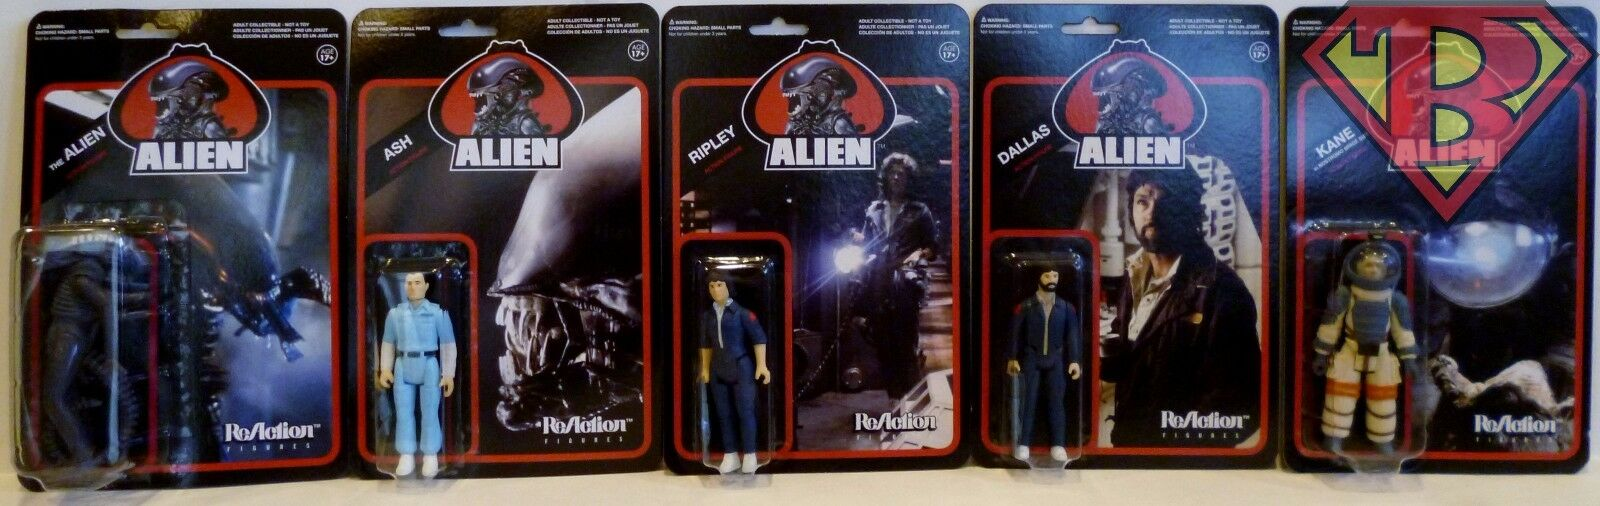 Alien 1979 Movie 3 3 4  Pouces RéAction Action  Figure Set of 5 Super 7 Funko 2013  dans les promotions de stade